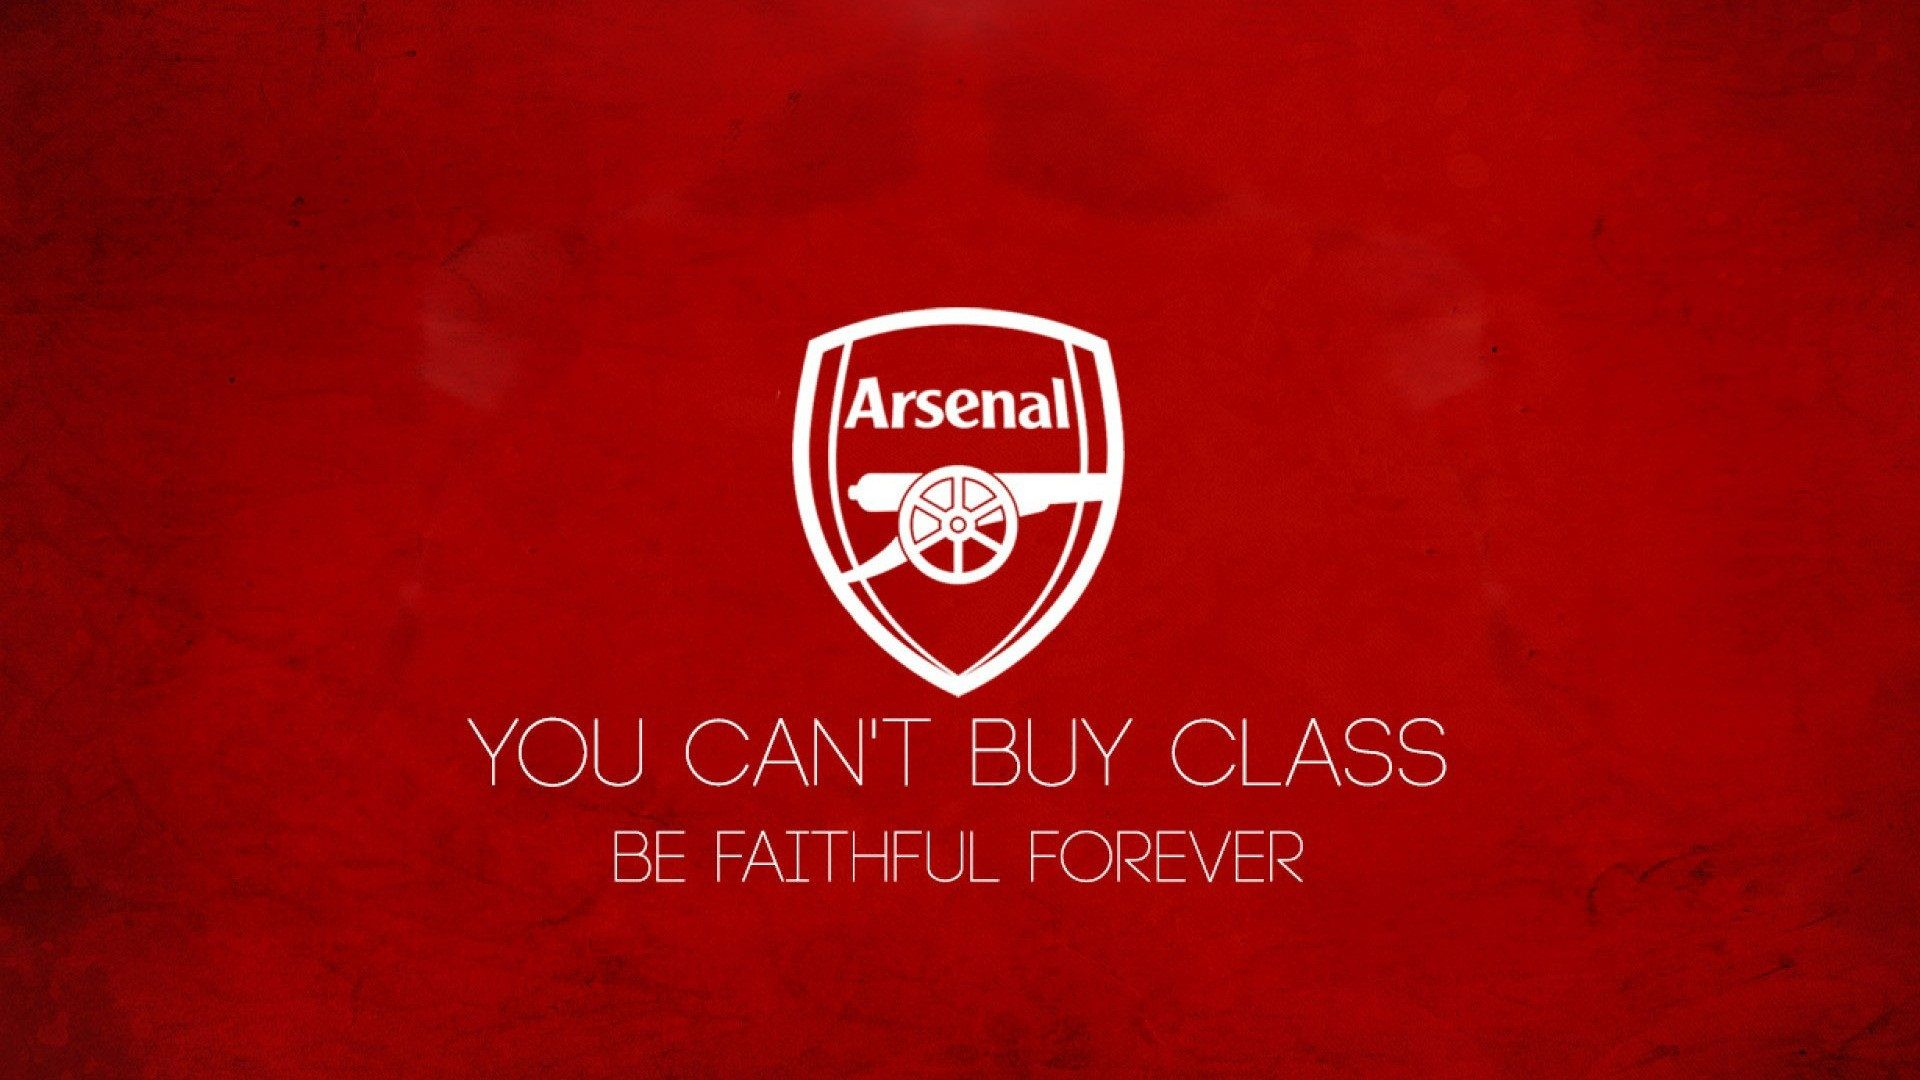 Wallpaper Arsenal Red HD Arsenal wallpapers Logo wallpaper hd 1920x1080